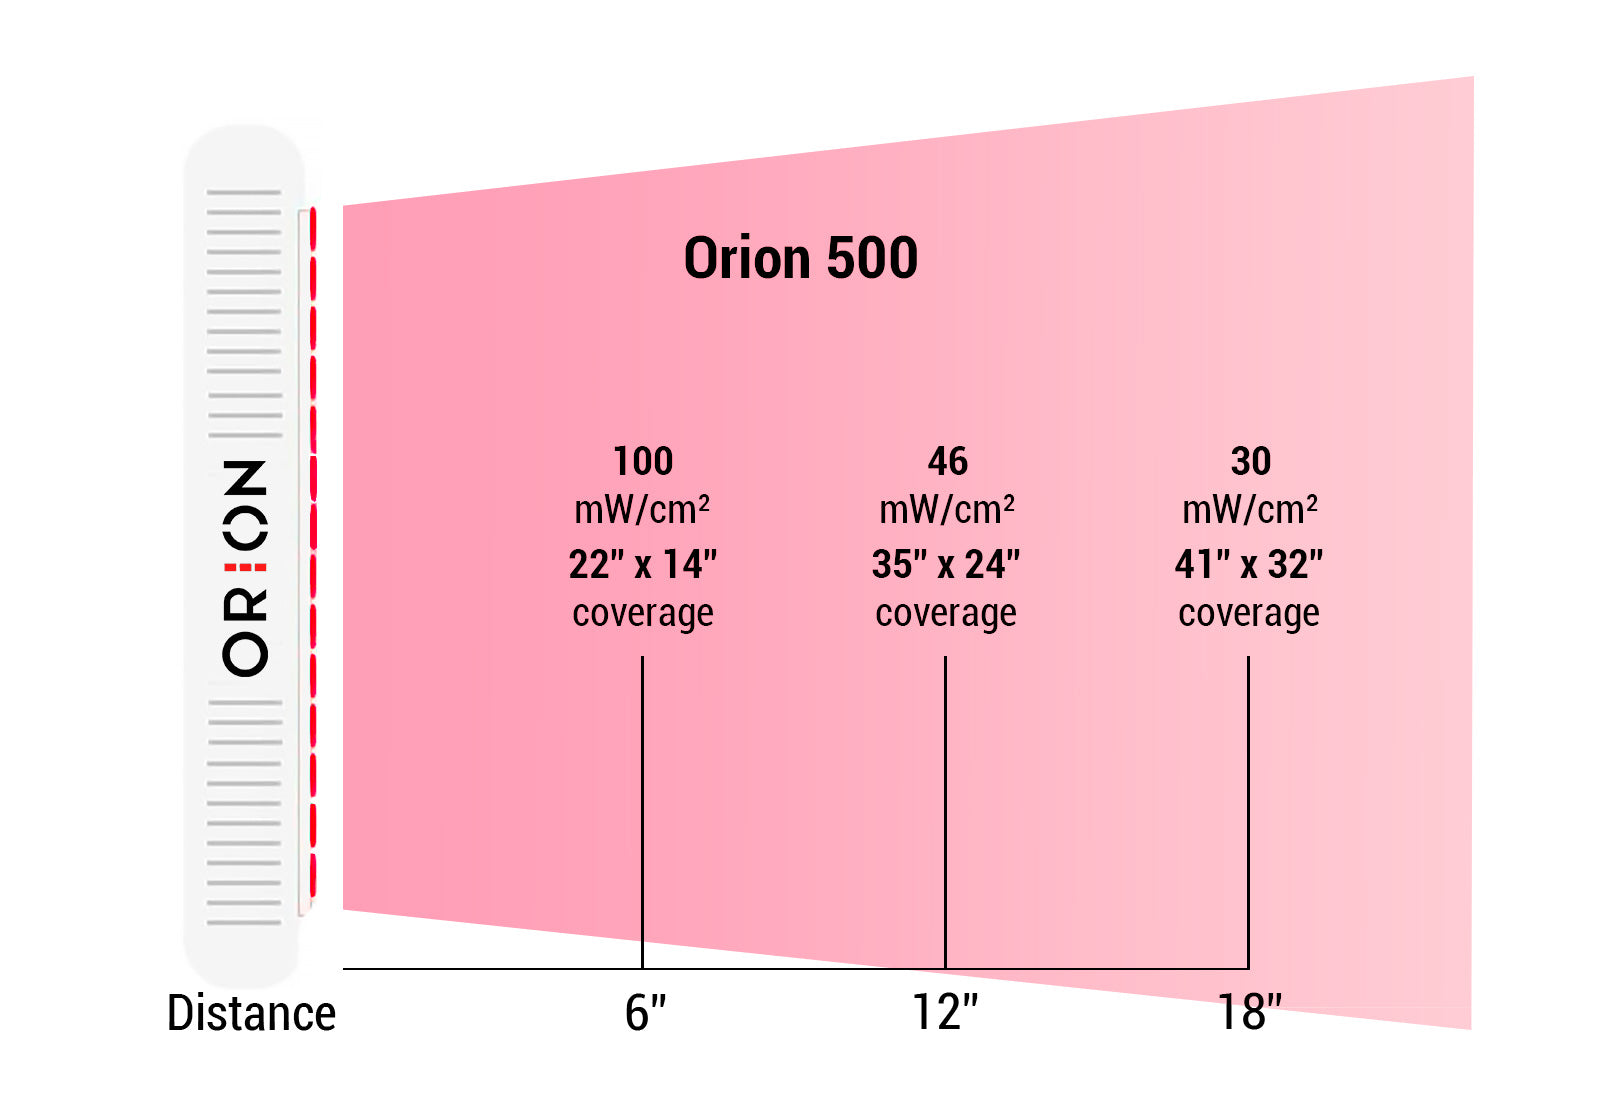 Irradiance levels of Orion Red Light Therapy at 3, 6, 12, and 18 inches. Orion 500.